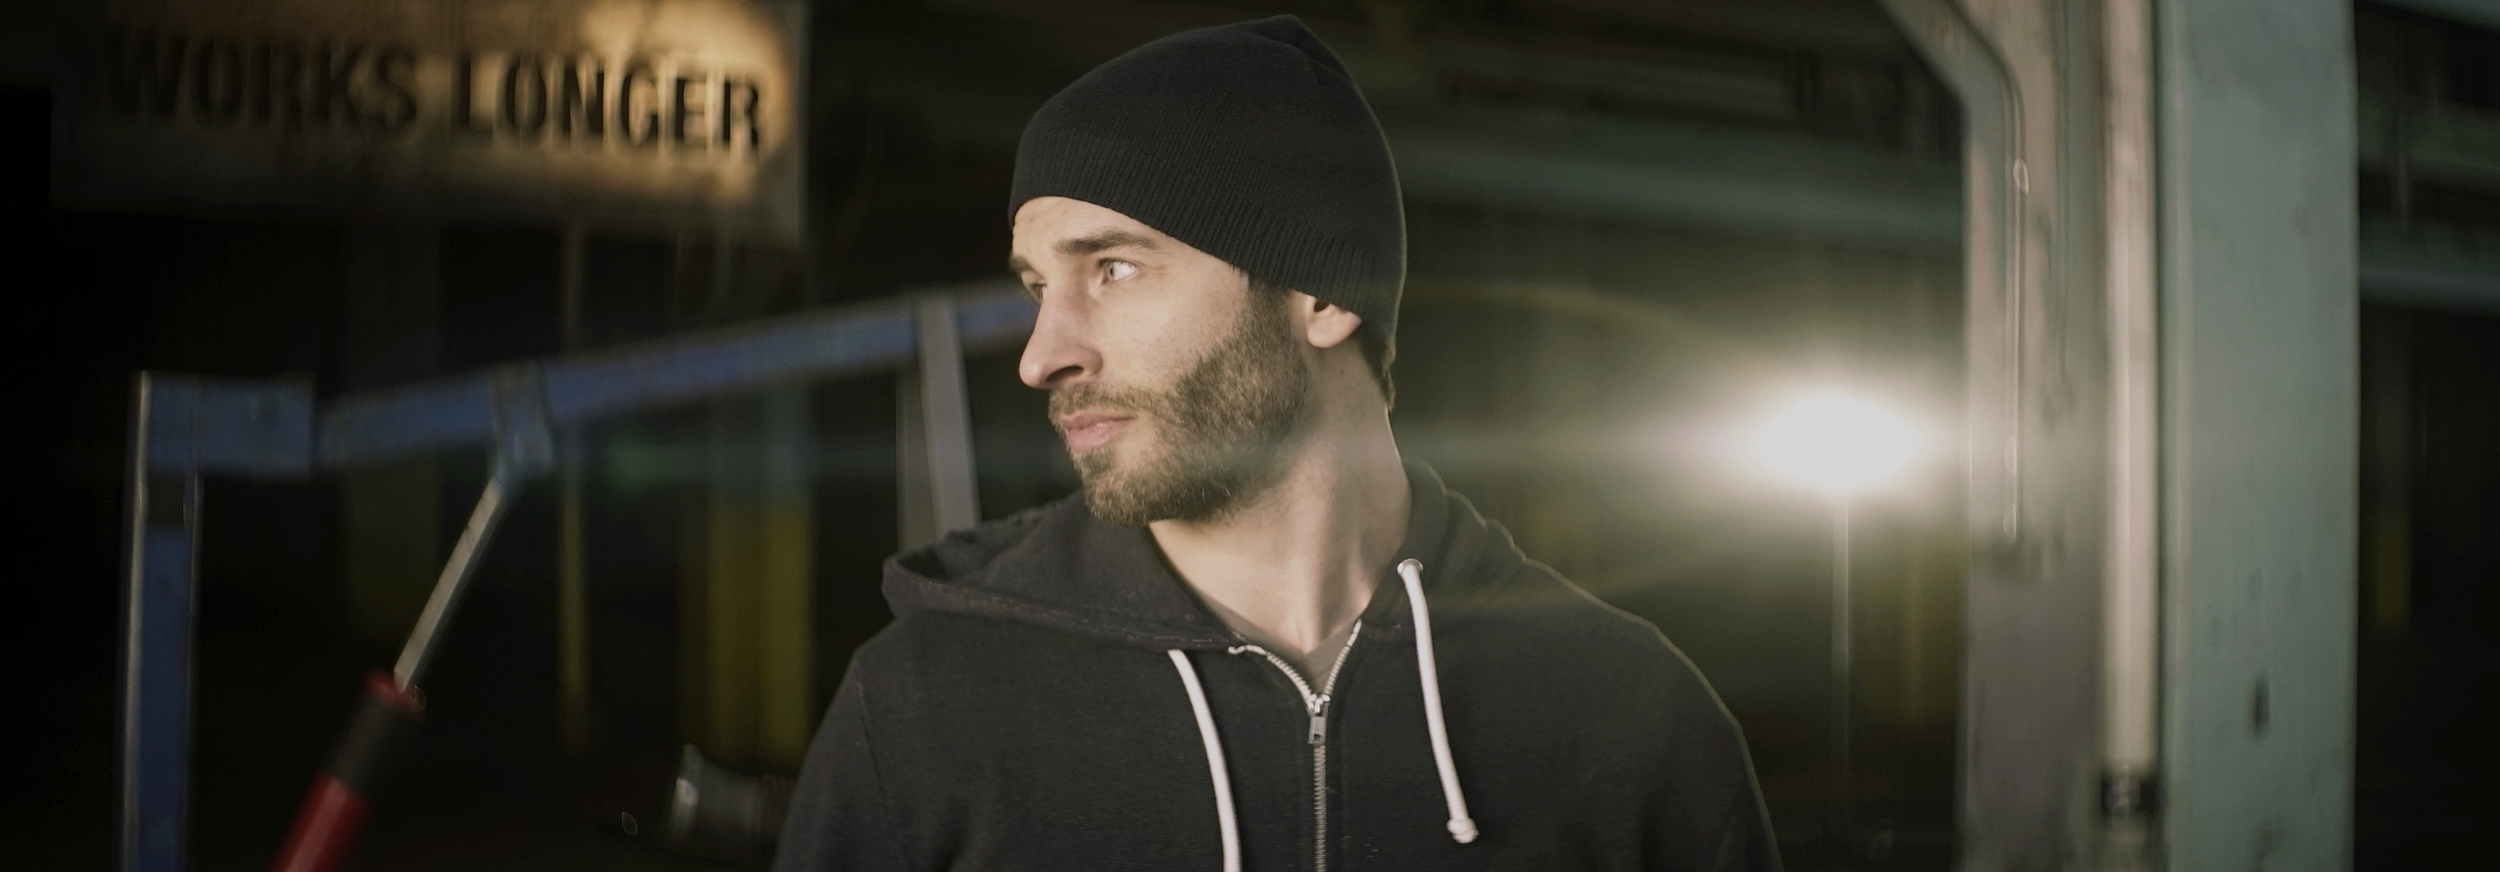 Lomo 50mm square-front anamorphic | Warehouse, Cleveland, OH. Fellow shooter and filmmaker William O'Boyle striking a pose here as a flare attacks his neck. Lighting instrument is a ETC Desire D40 daylight LED. Image captured wide open. Photo by Keith Nickoson.